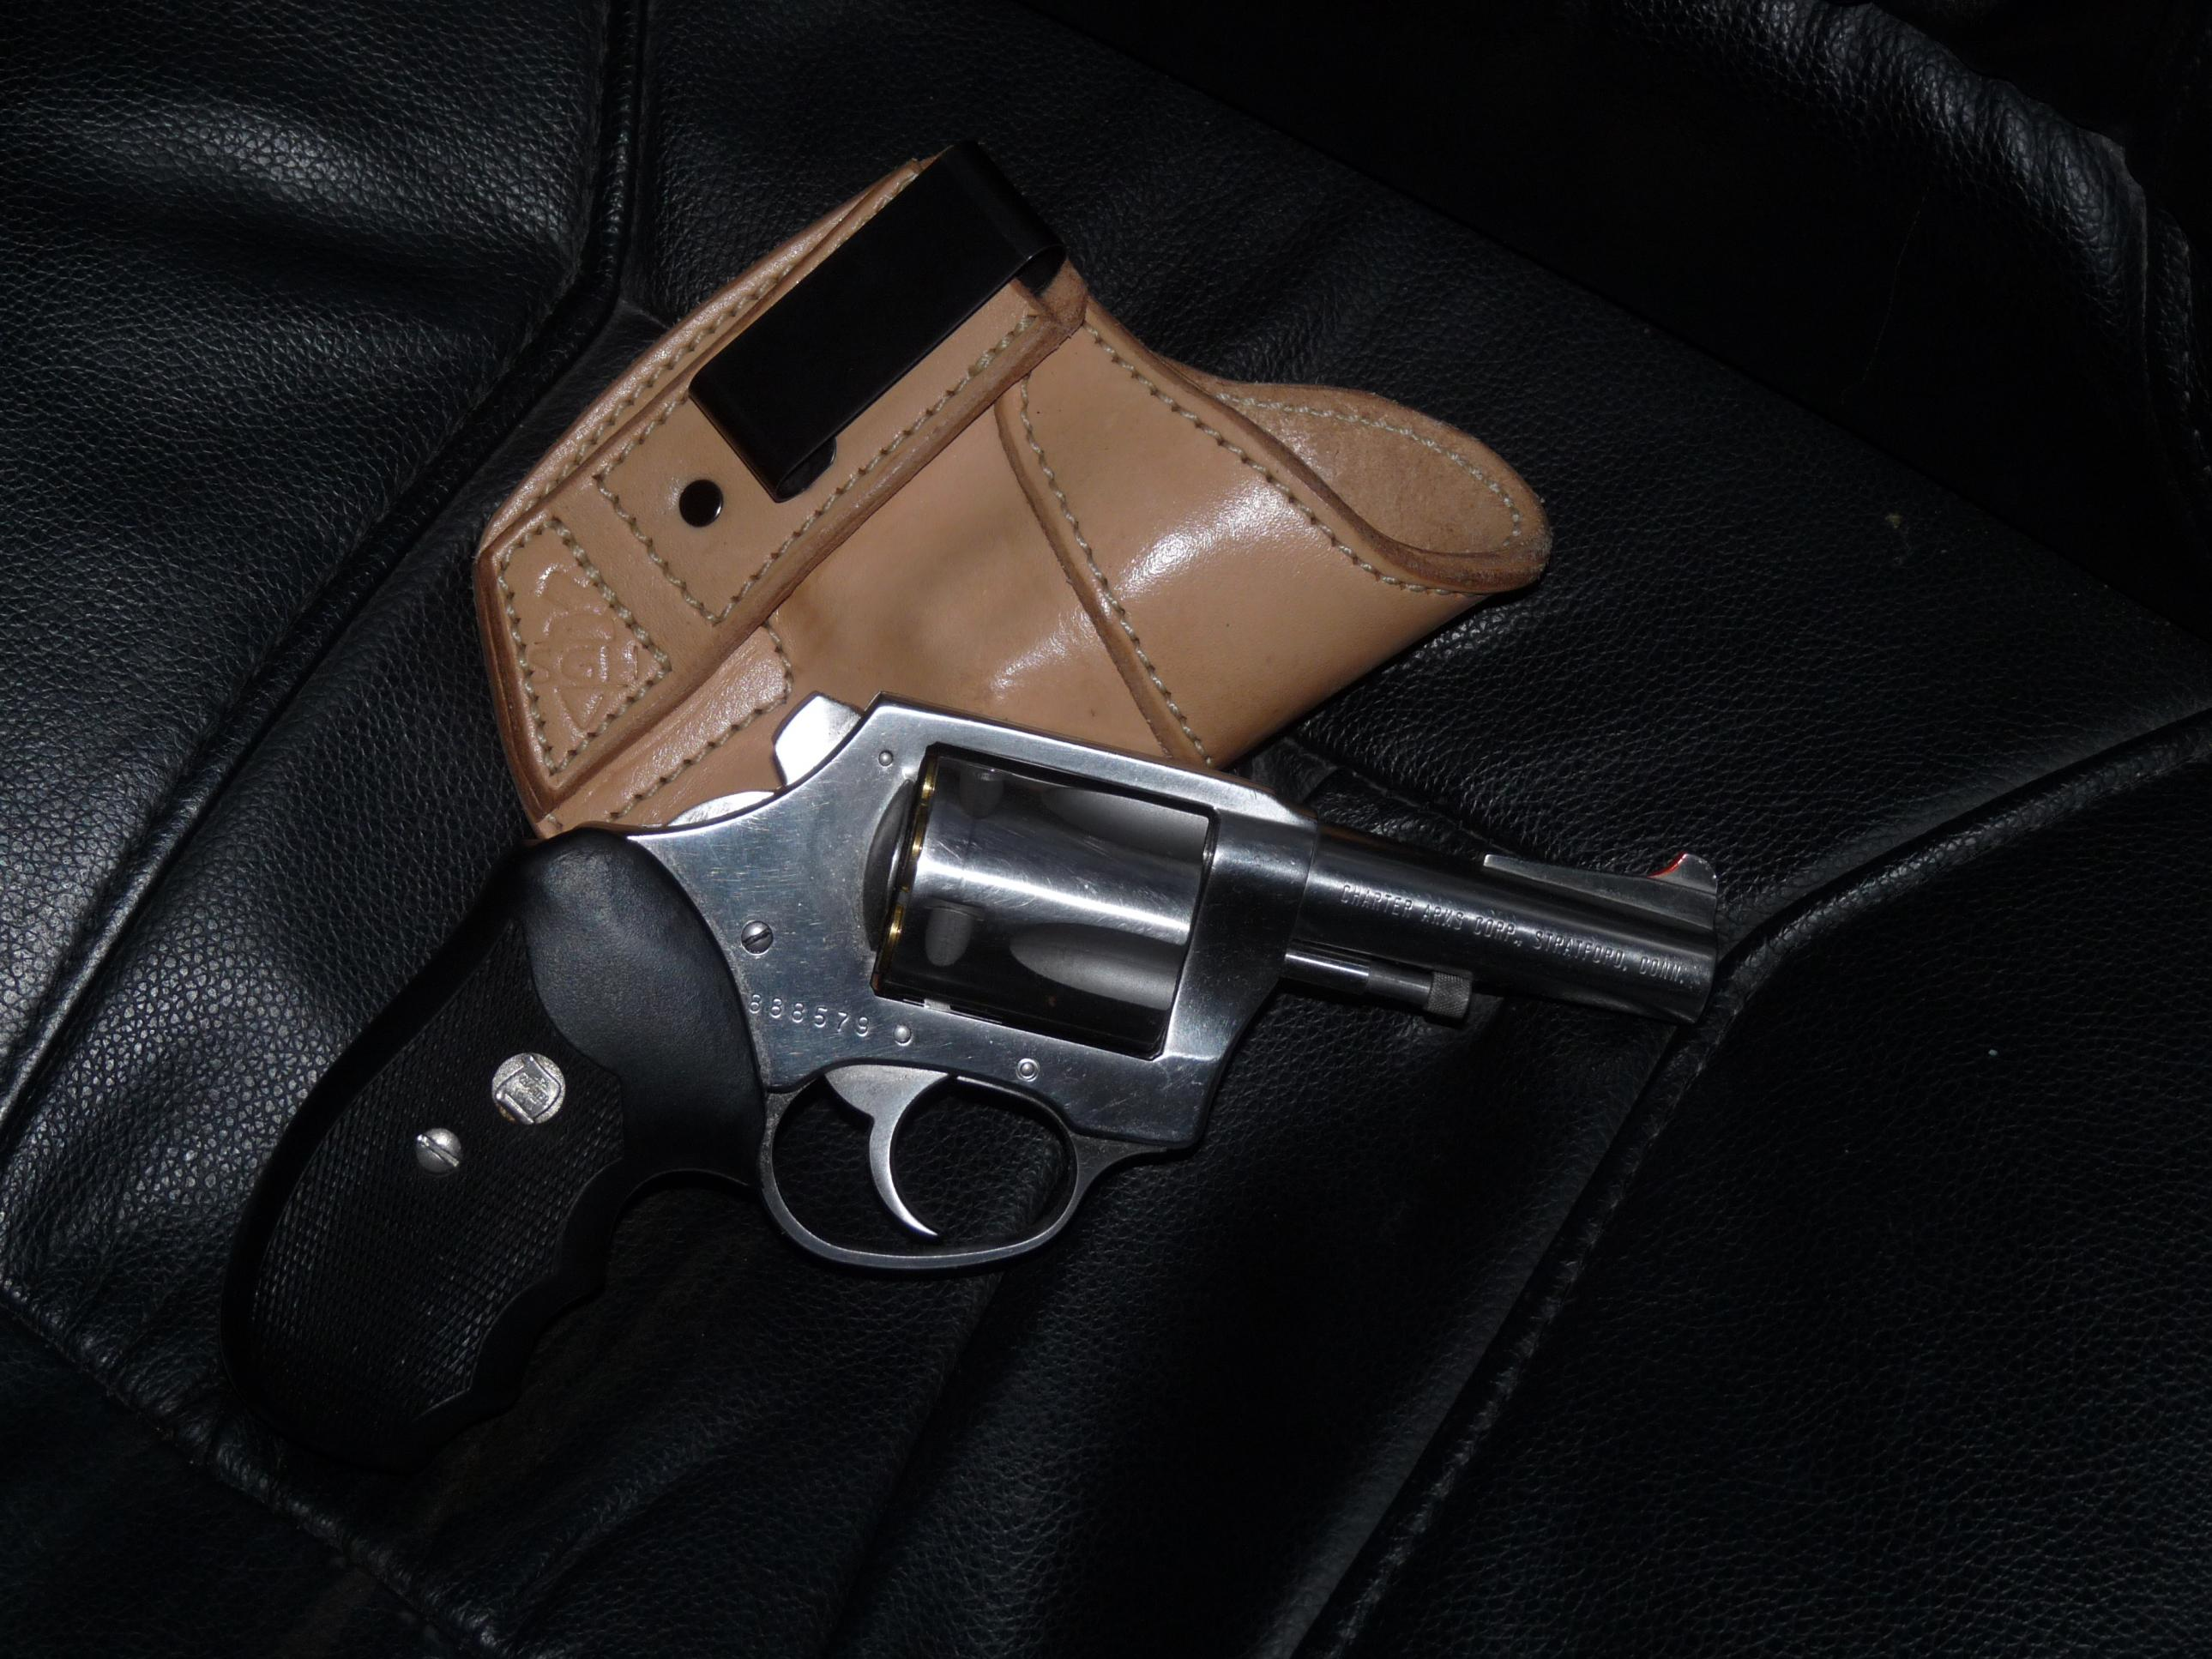 Charter Arms Guru - Your source of Charter Arms info